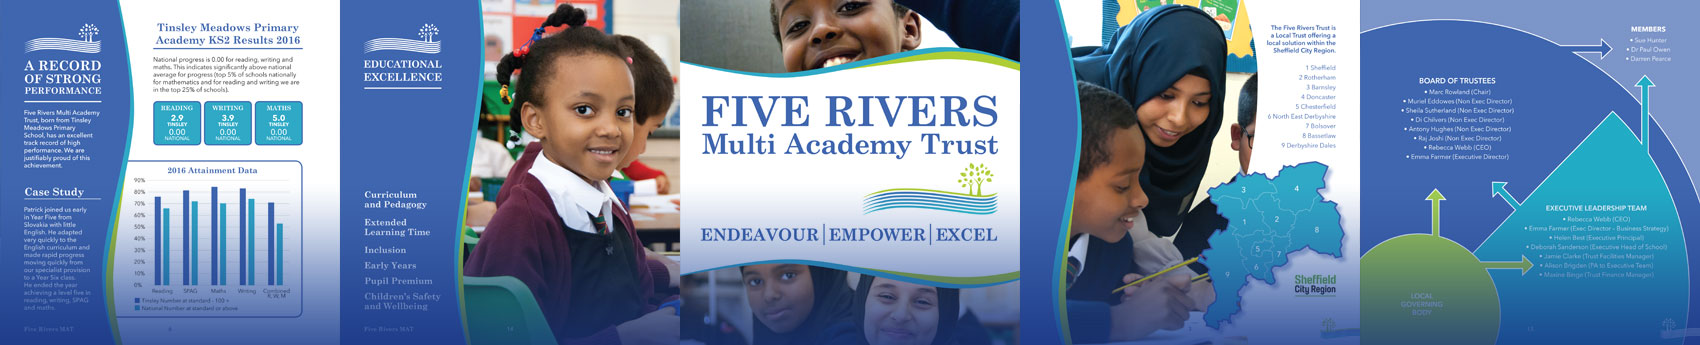 Pages from the Five Rivers Multi Academy Trust prospectus